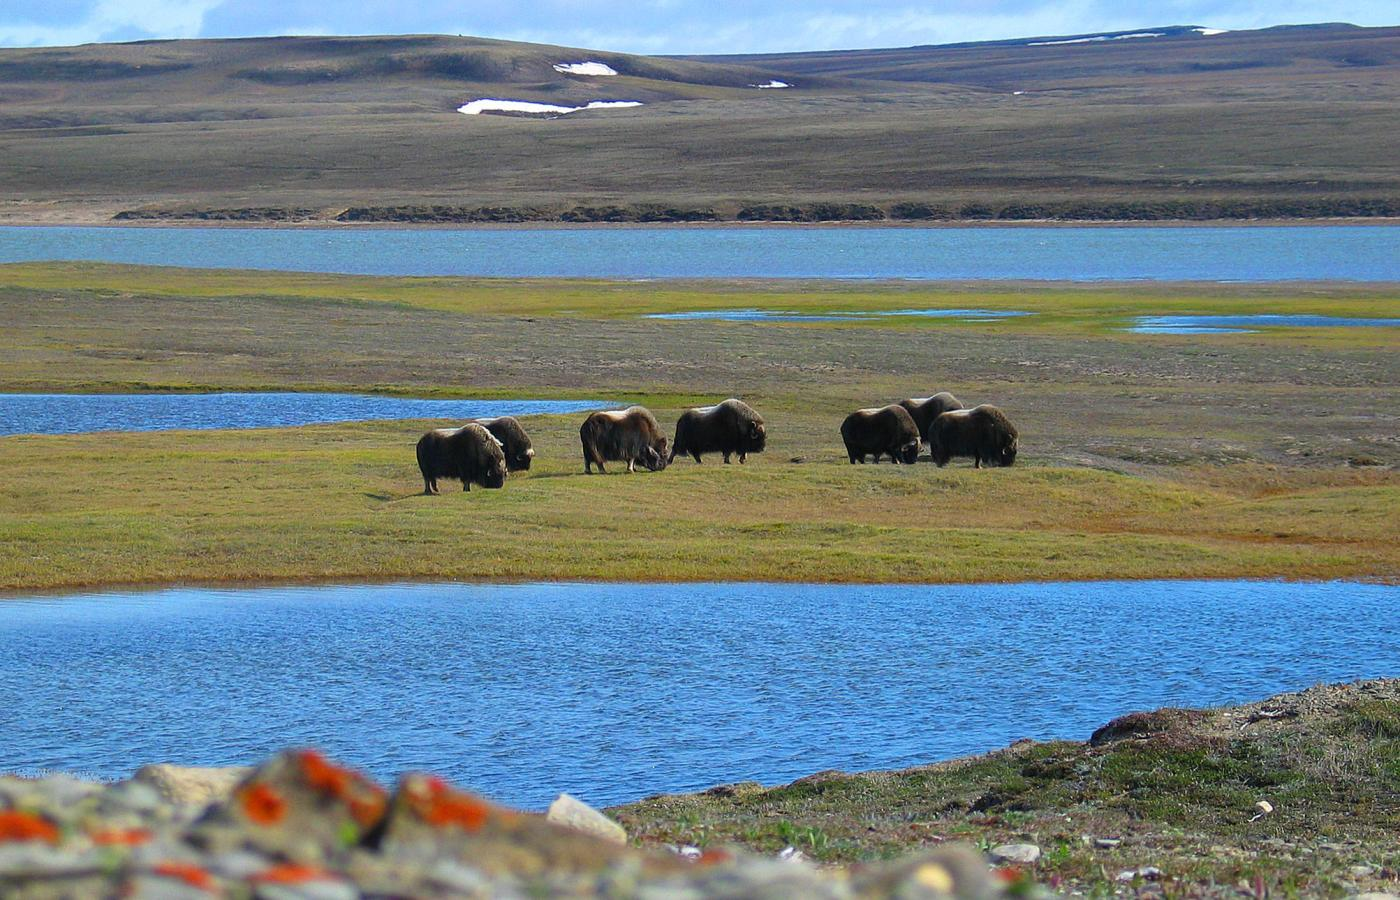 Muskoxen on the banks of the Thomsen